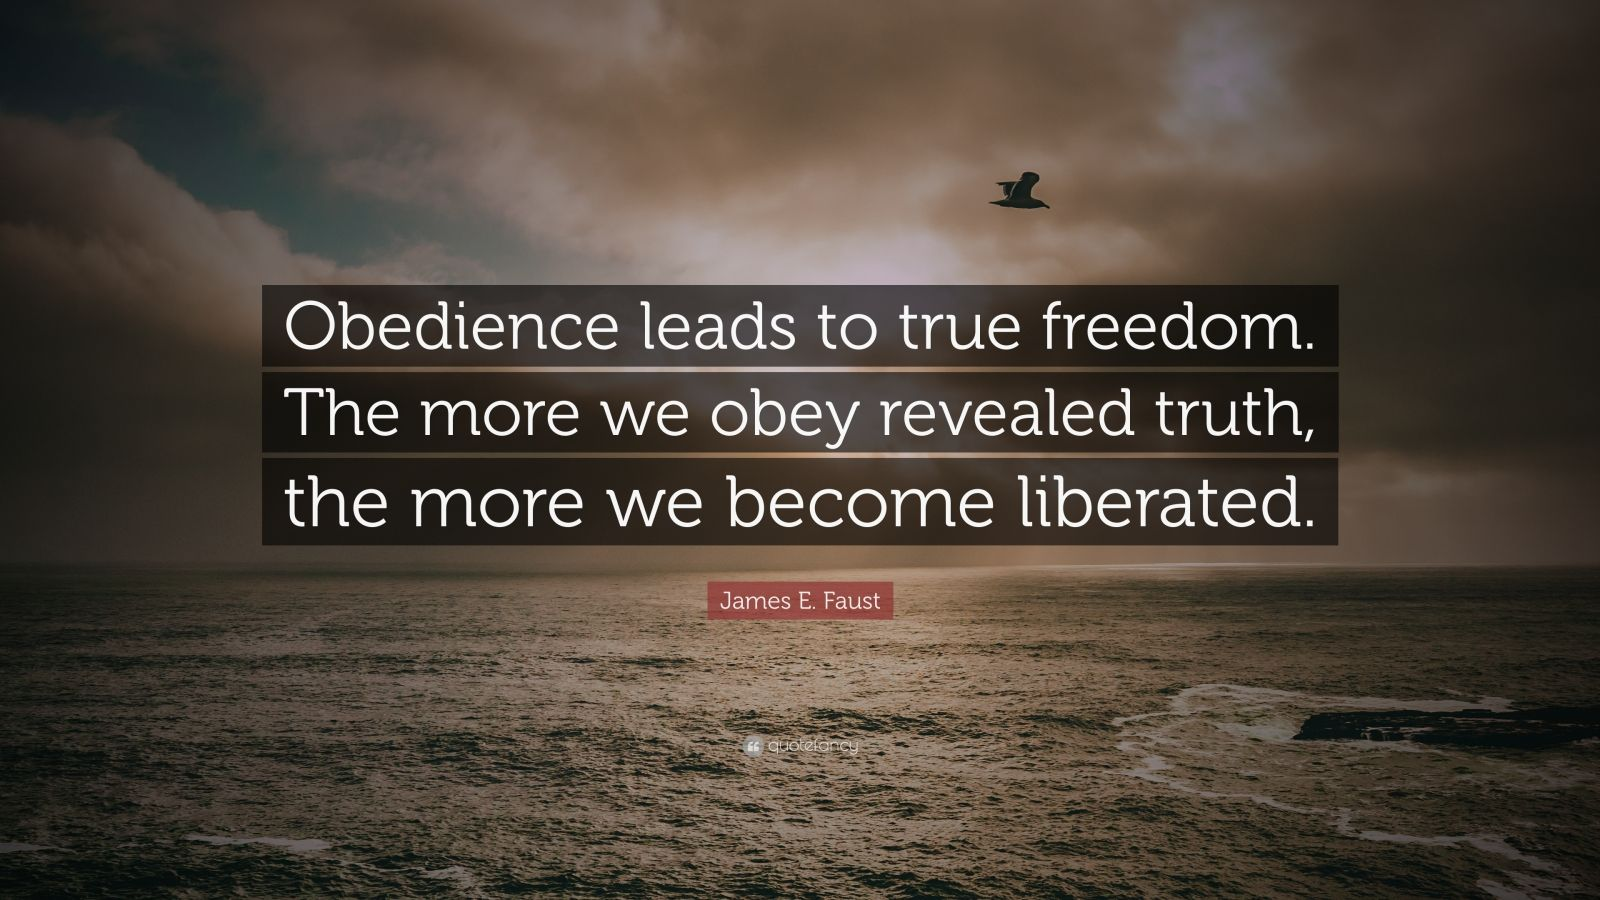 """James E. Faust Quote: """"Obedience leads to true freedom. The more we obey revealed truth, the more we become liberated."""""""